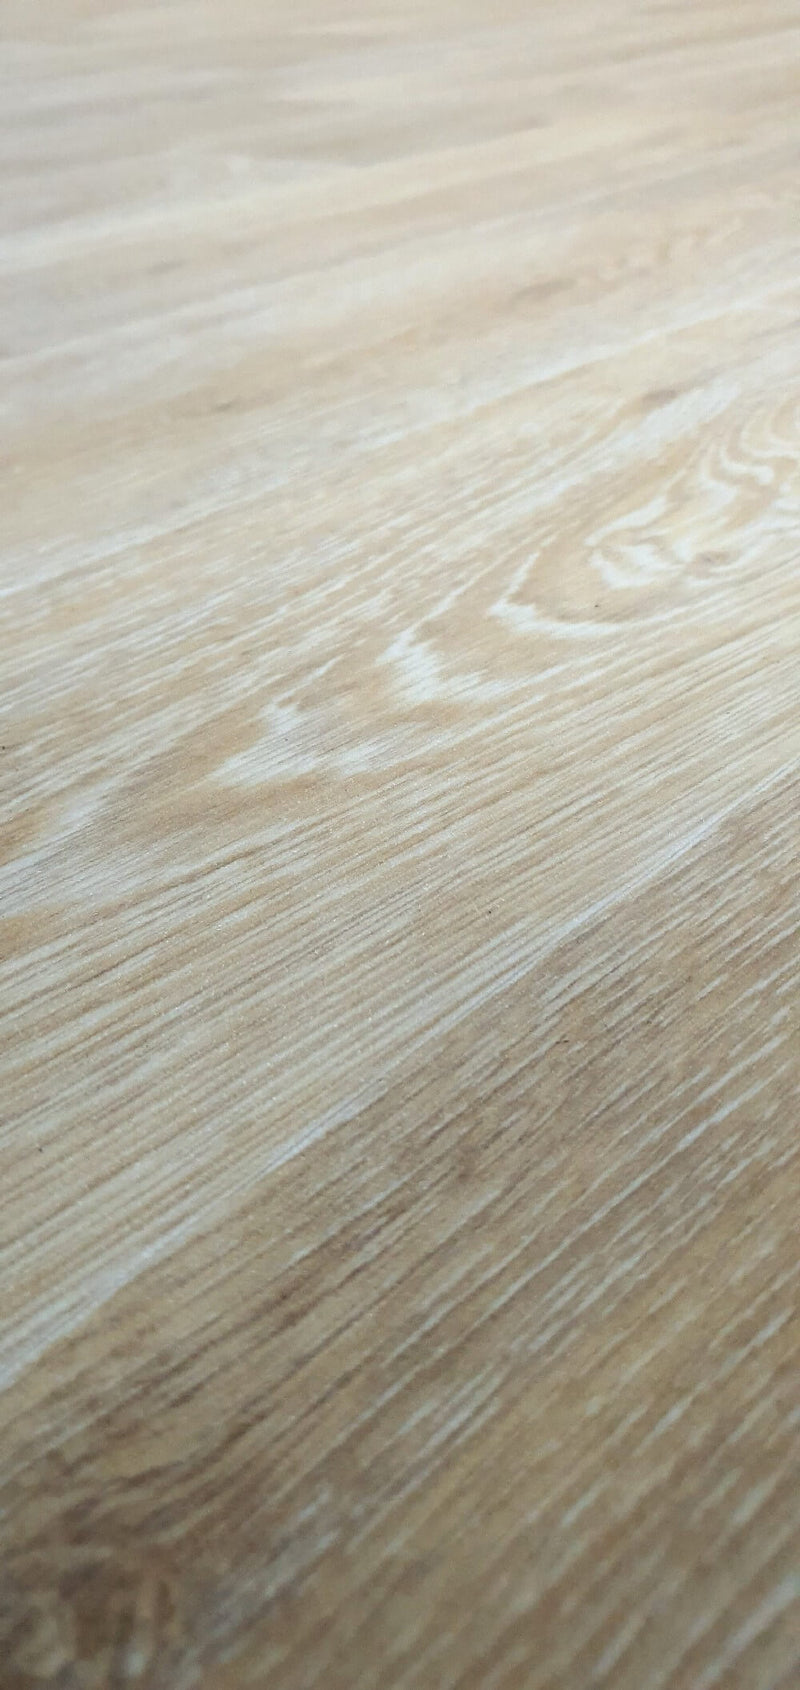 Chaparral Oak 532 Luxury Vinyl Lino Flooring 4m Width SQM Price is £7.95 - Decoridea.co.uk